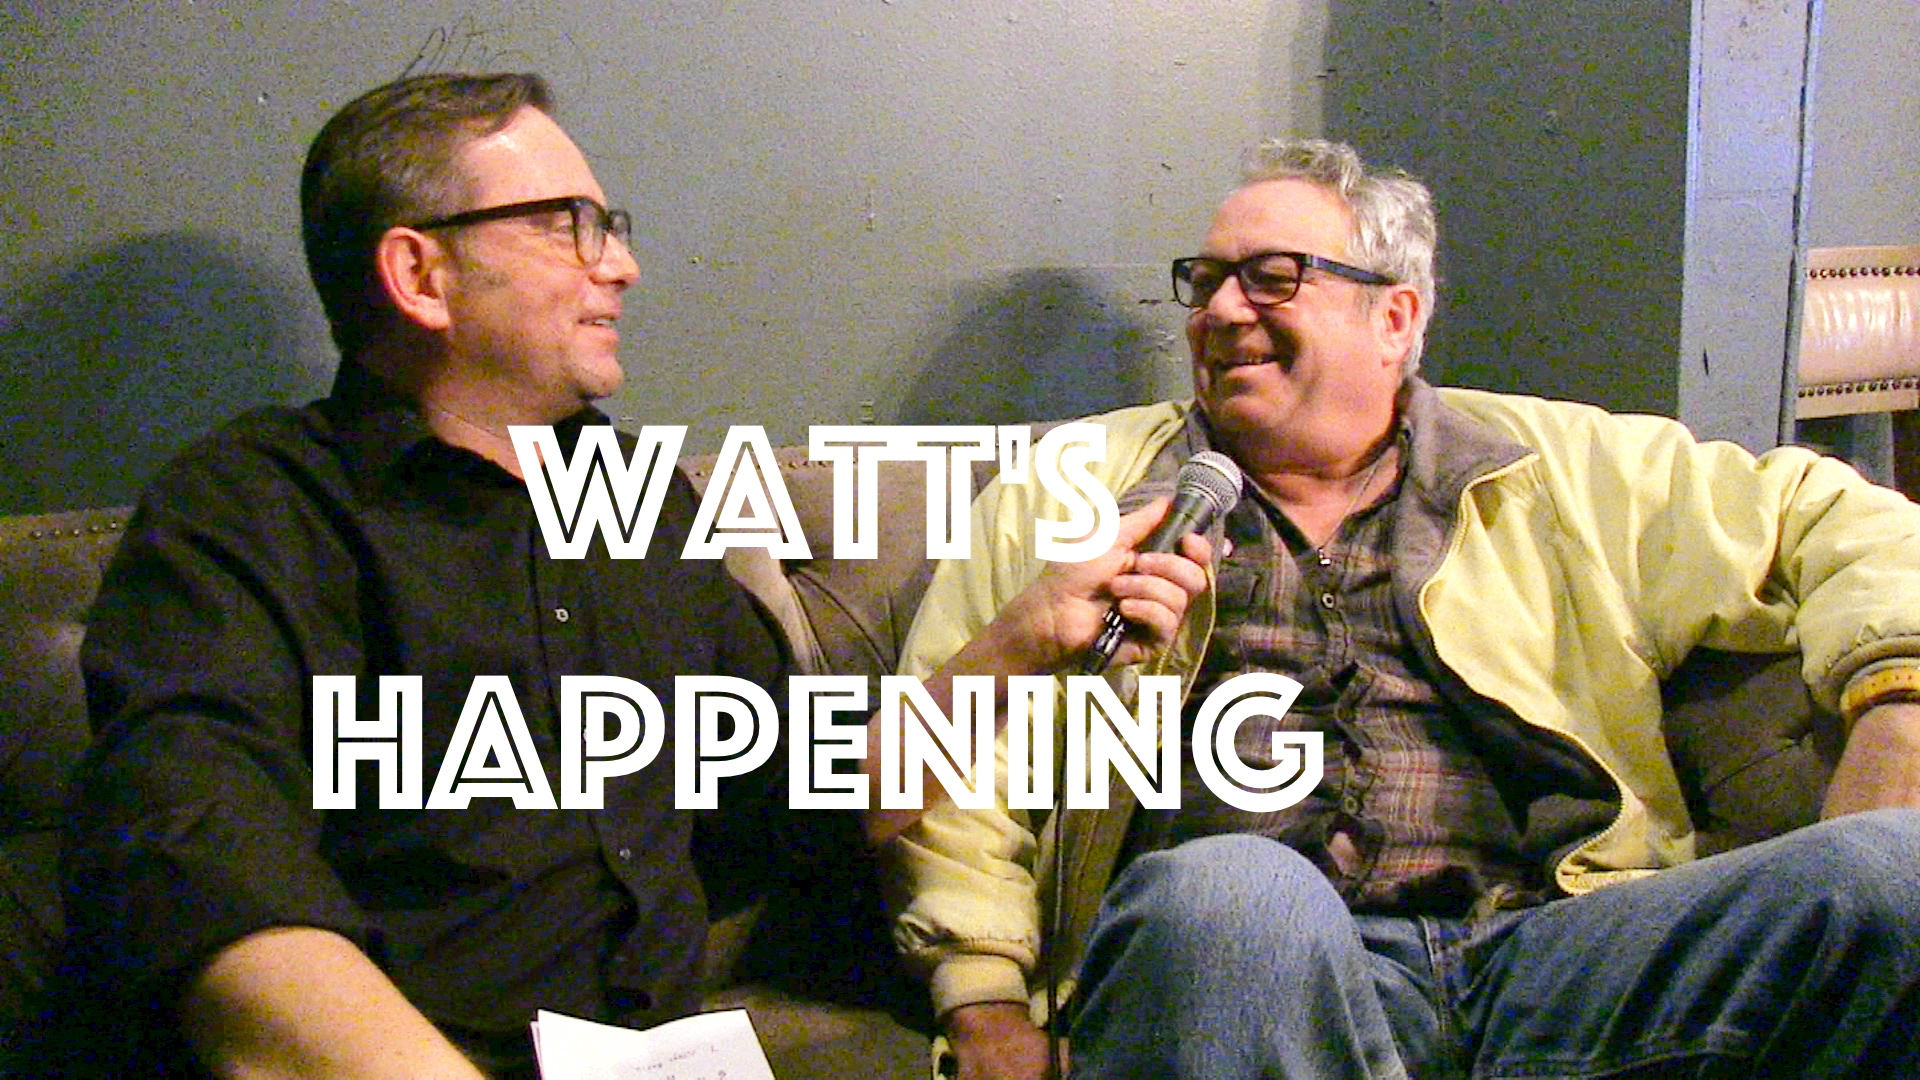 Watt's Happening Web